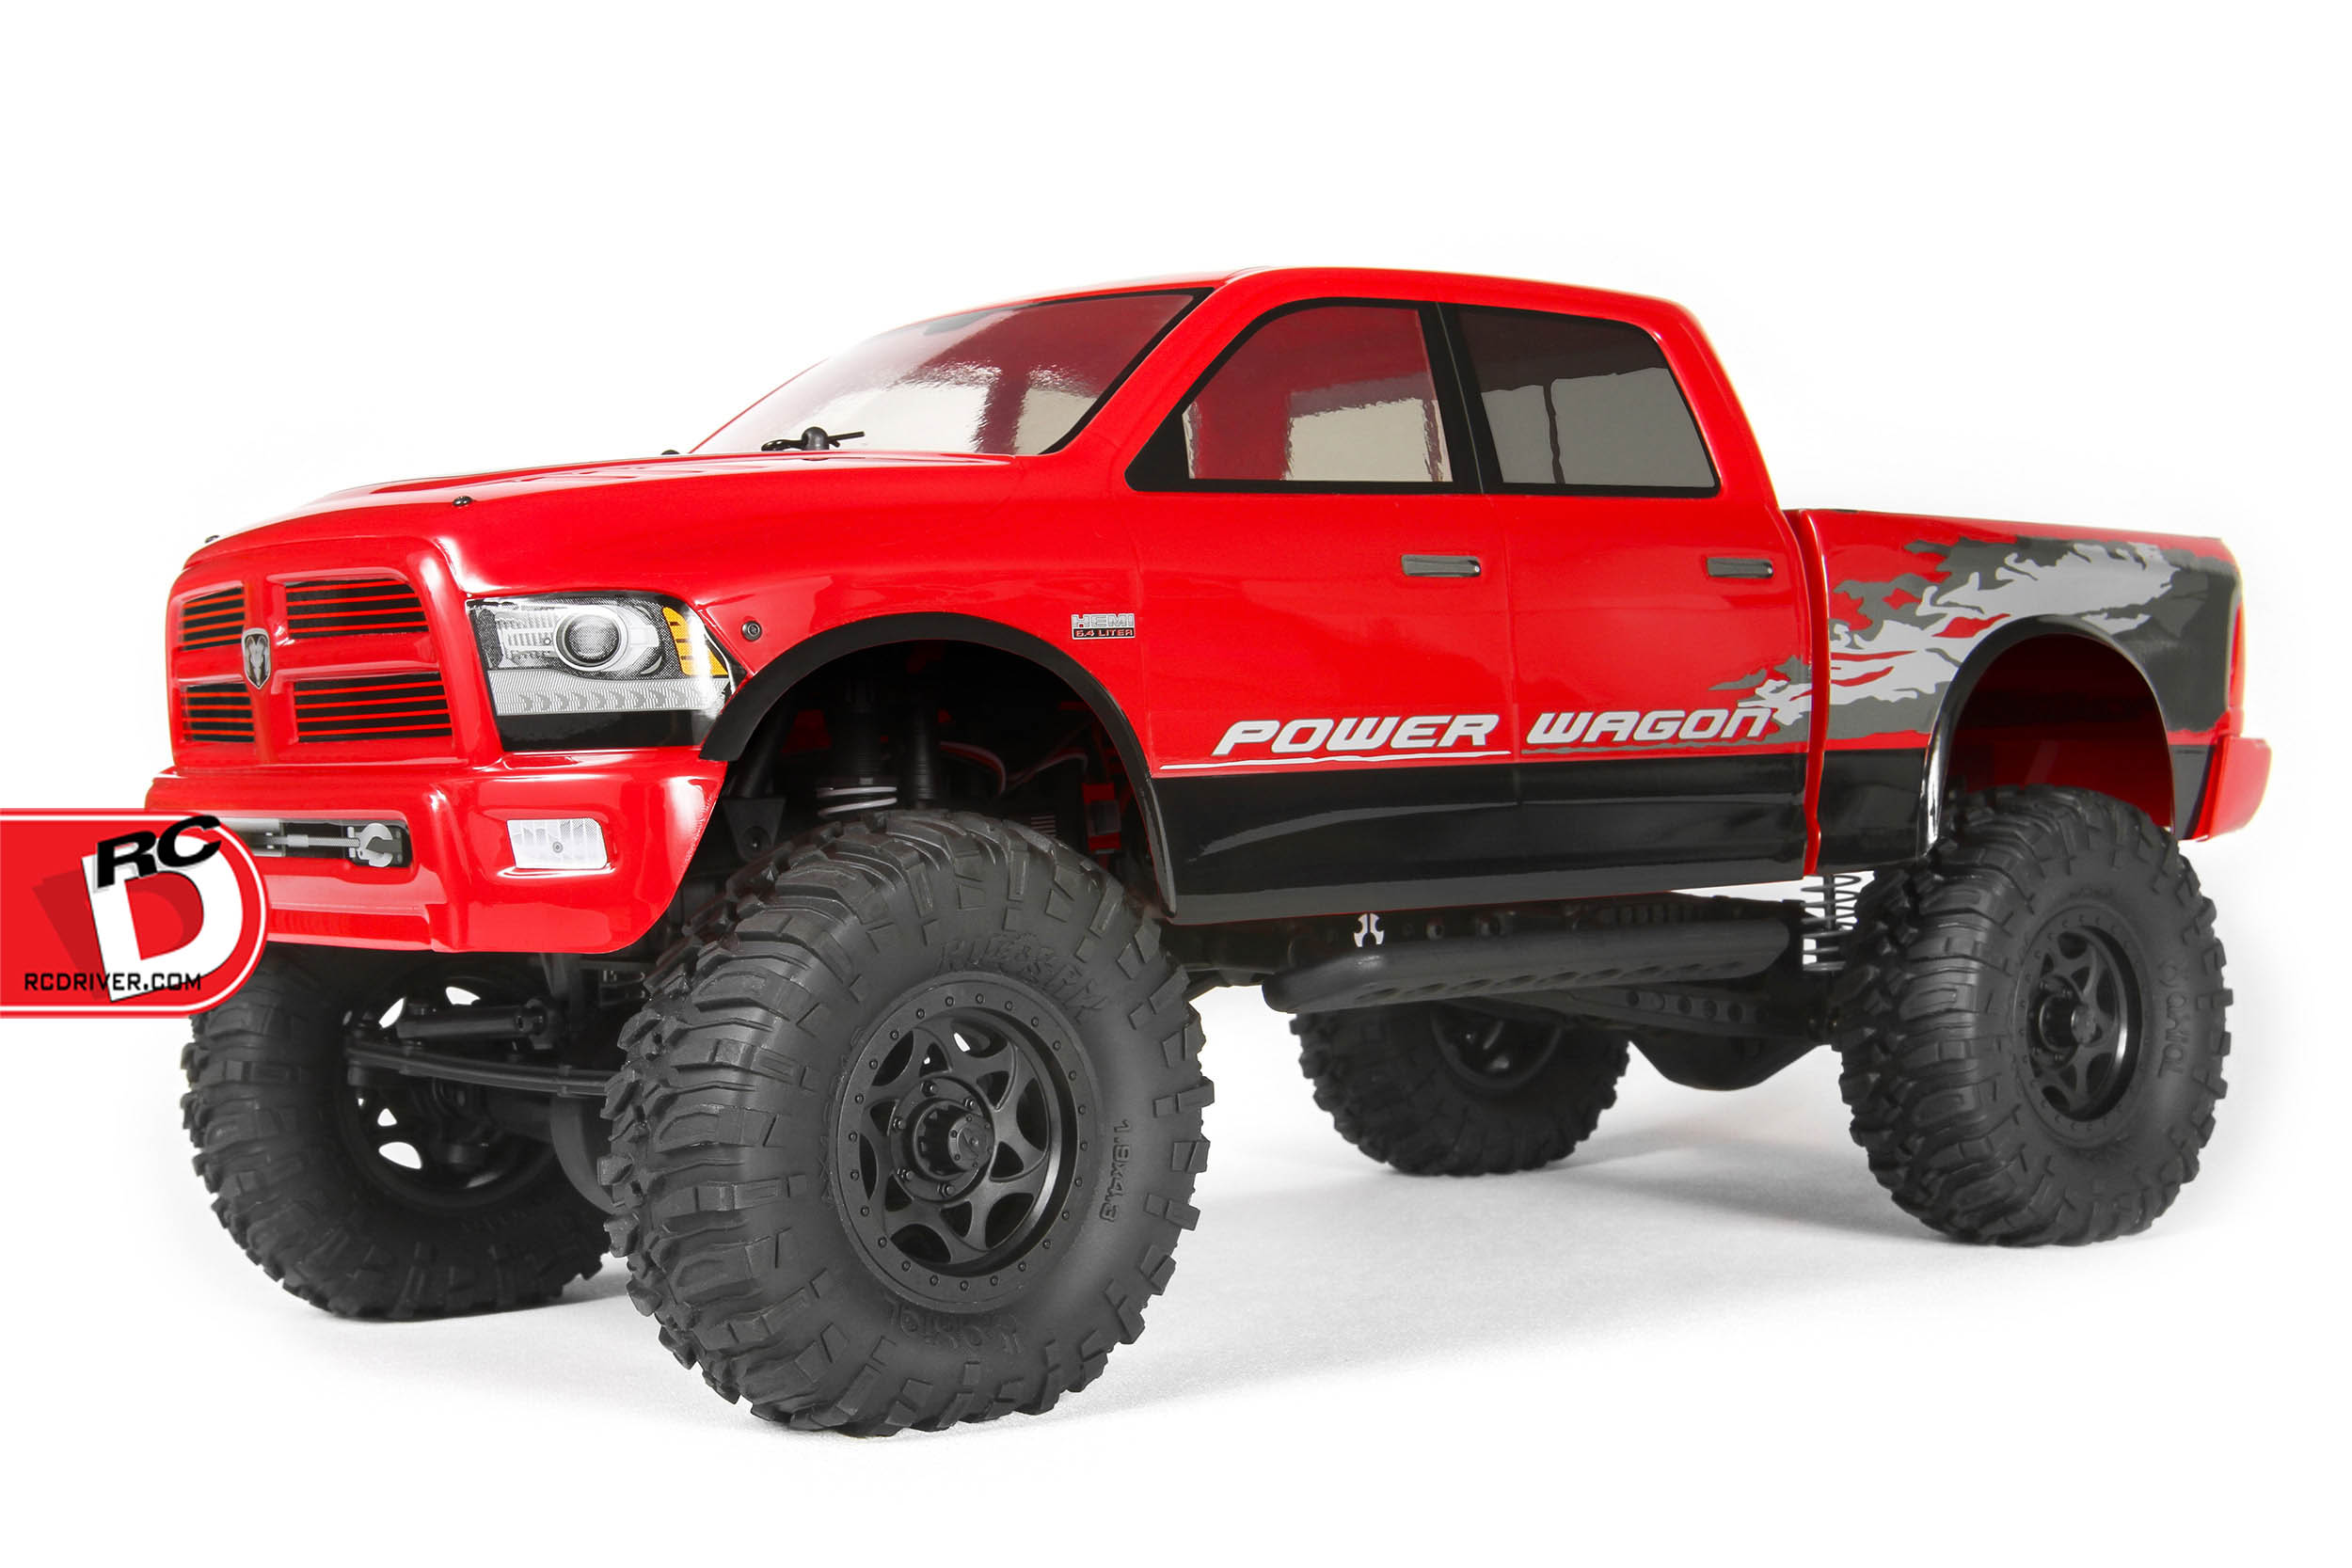 Ram Power Wagon From Axial Racing